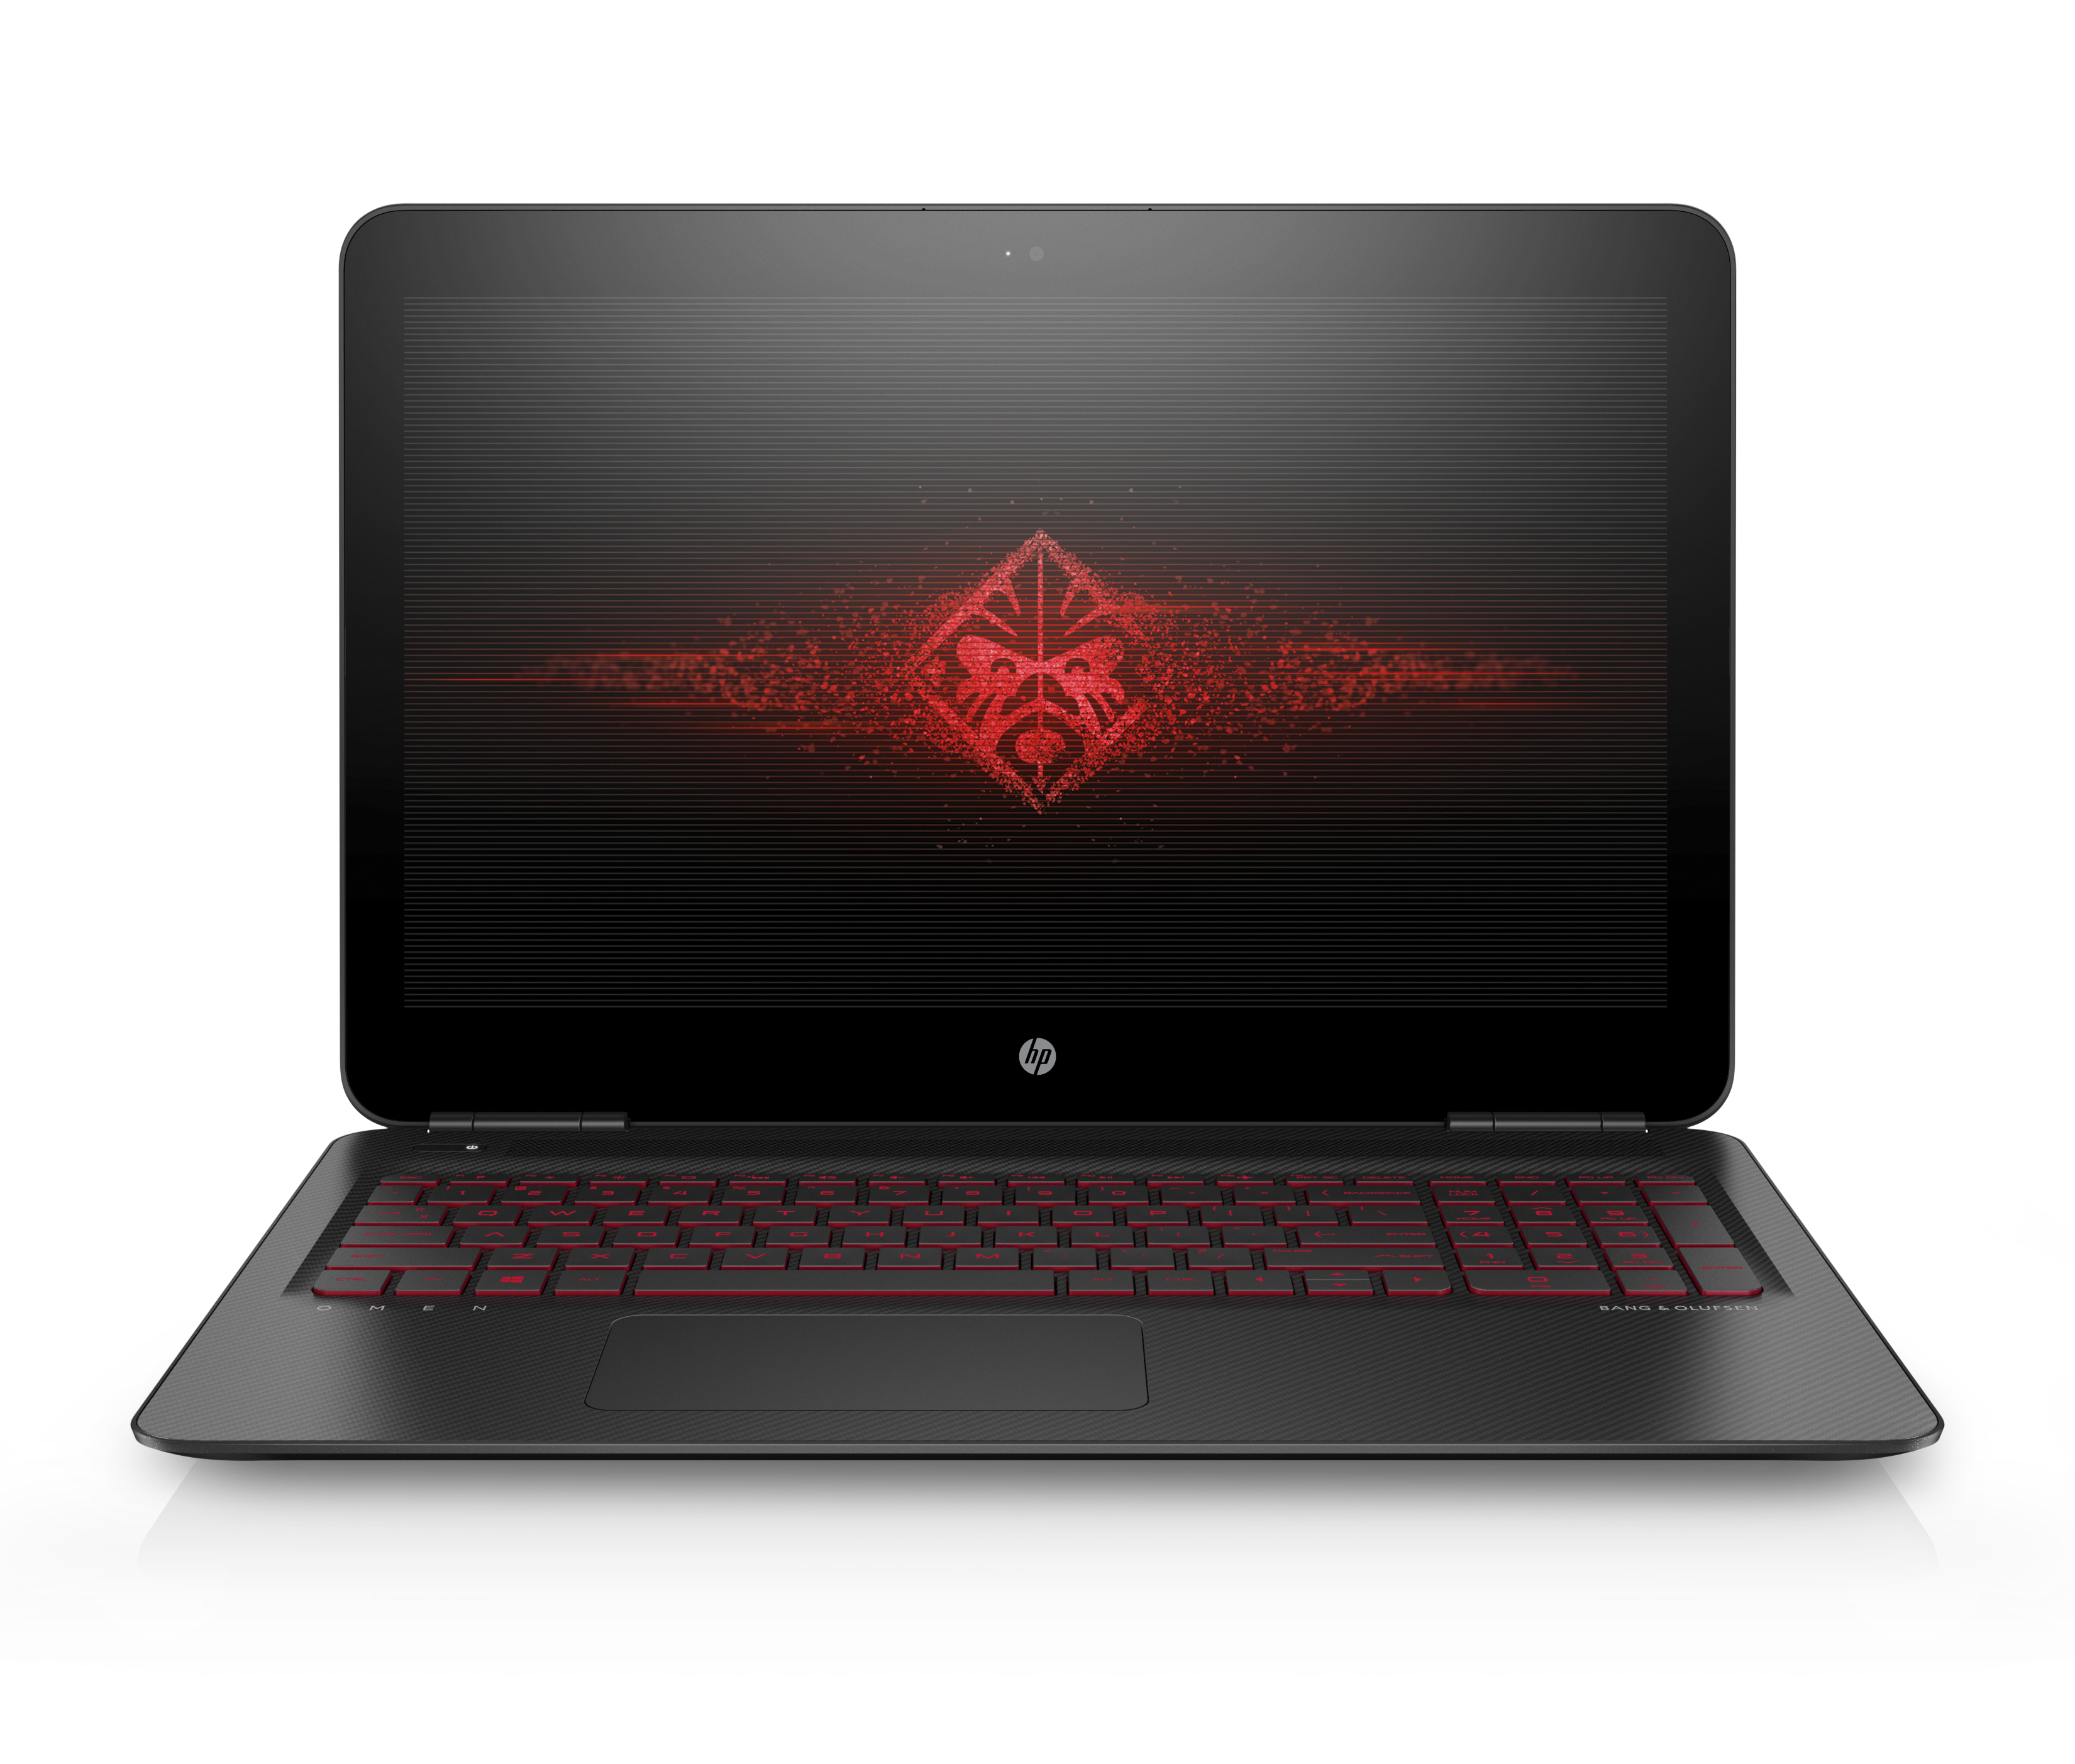 HP launches new Omen line of gaming laptops, desktops, and